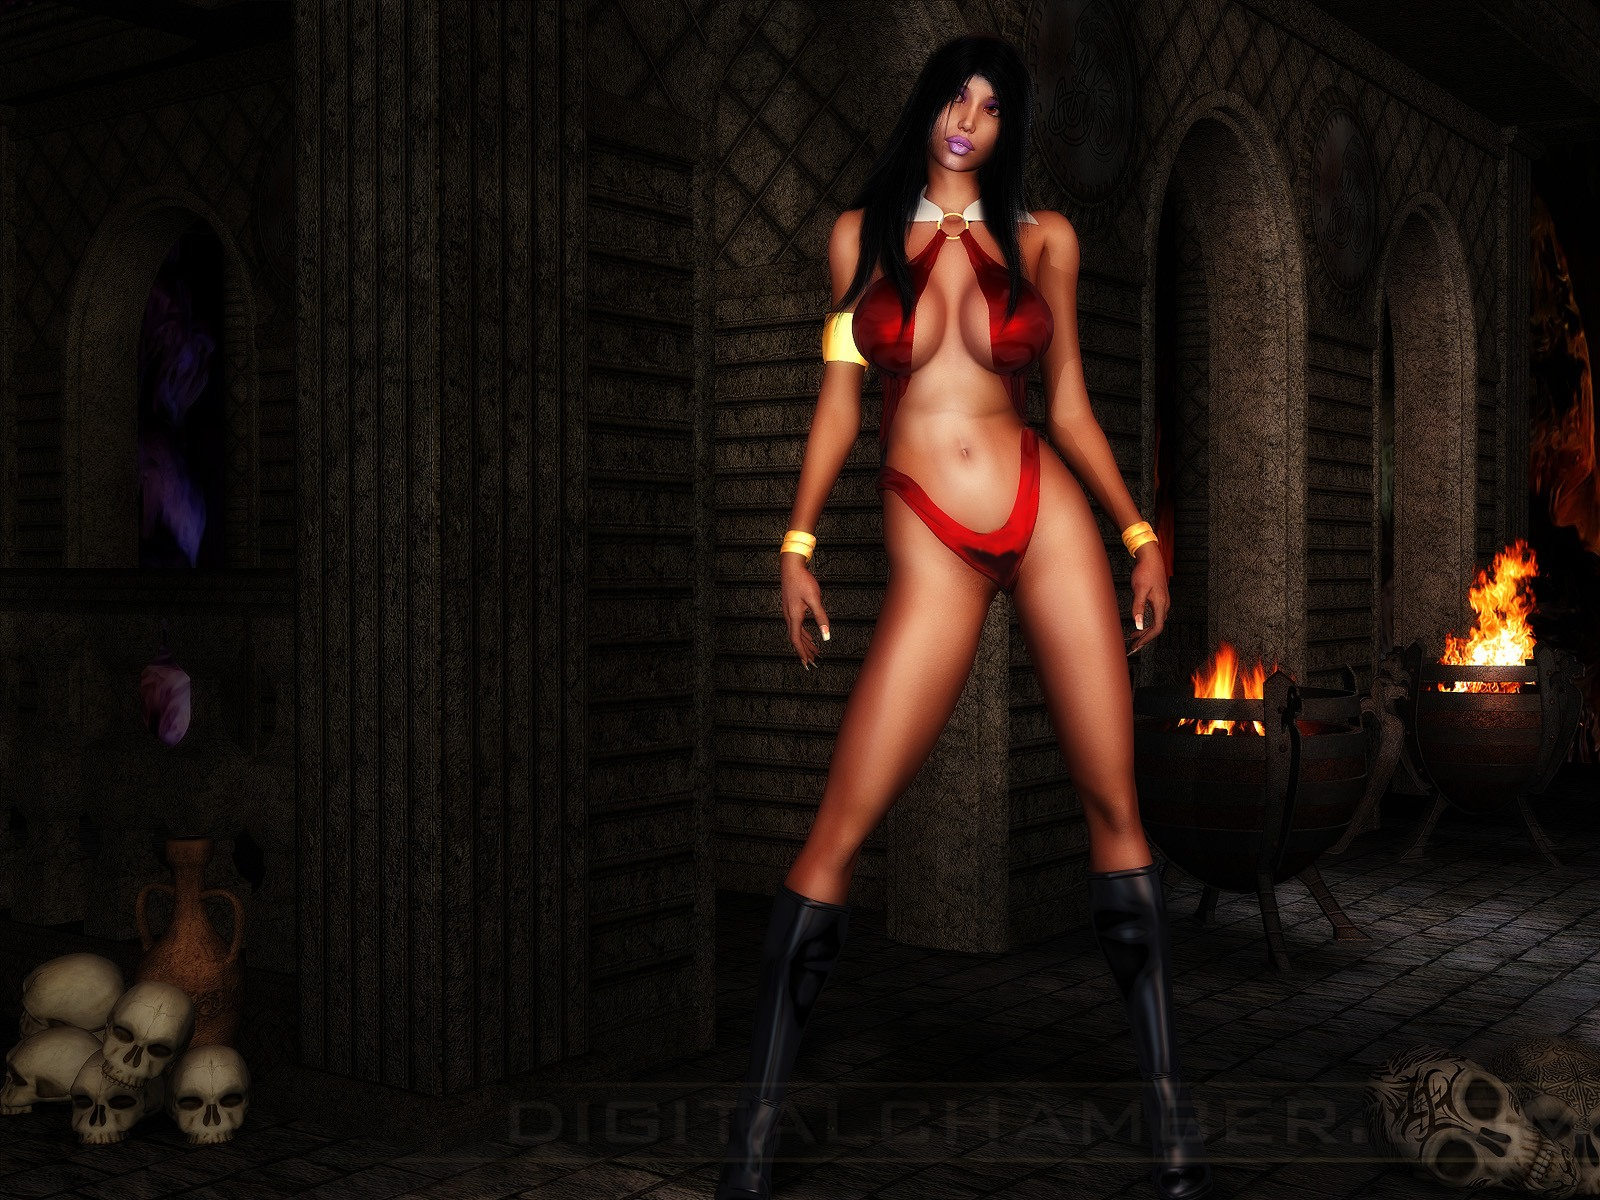 Nude vampire woman wallpaper hentia queen